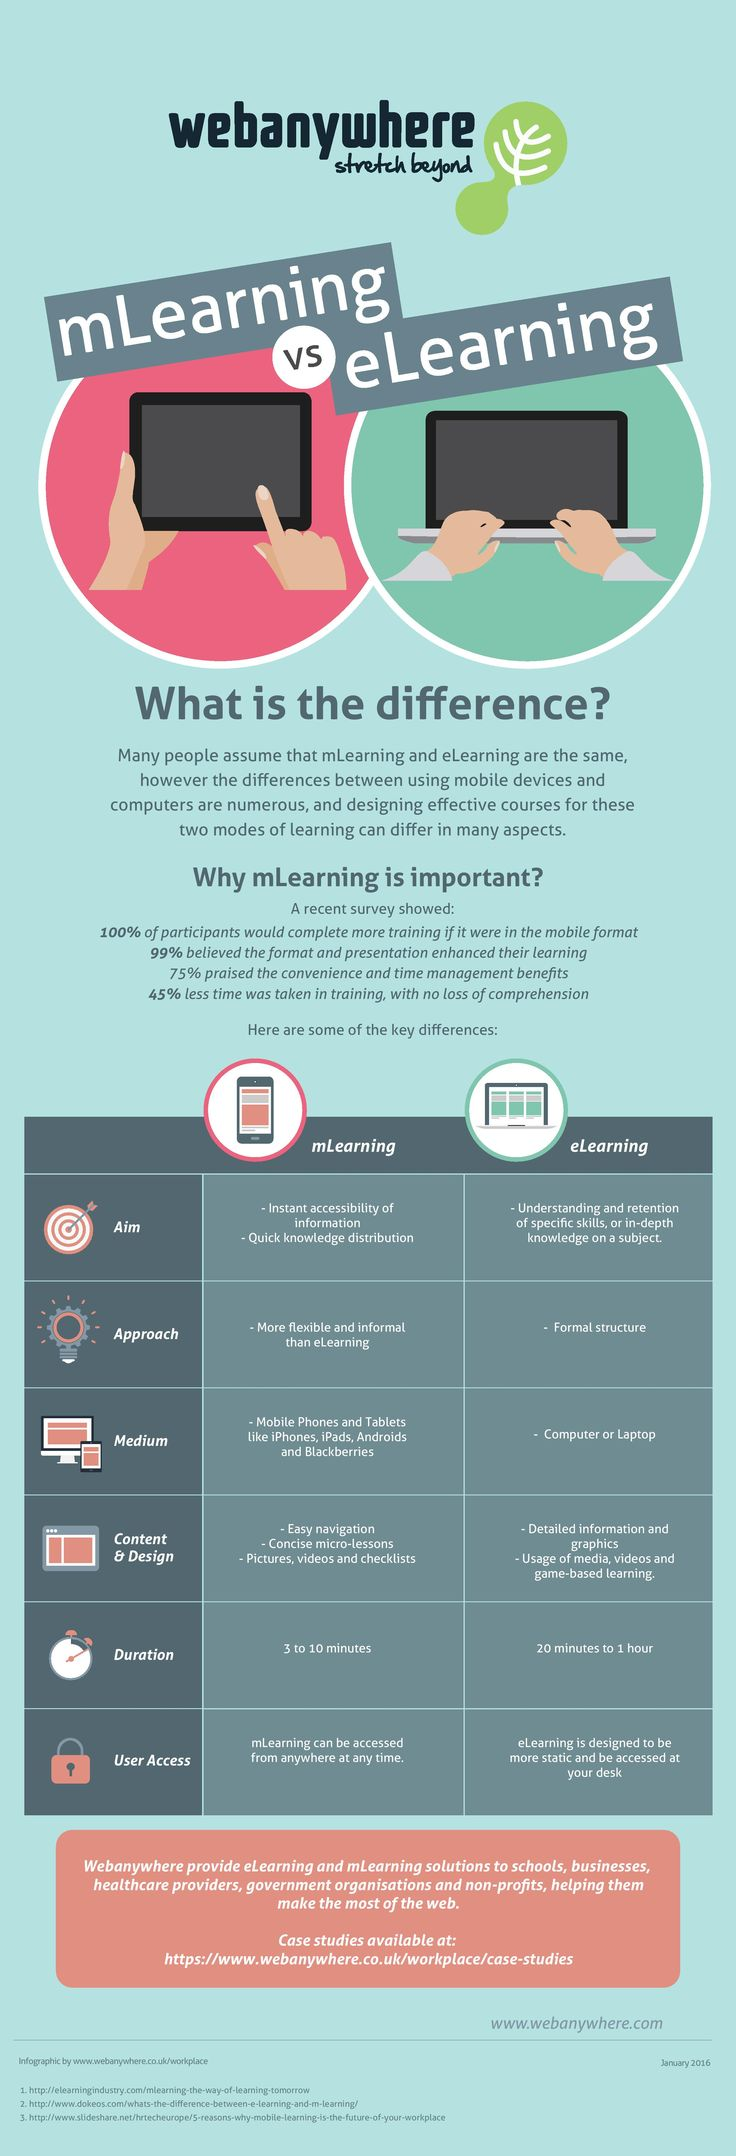 mLearning vs eLearning [Infographic]  Created by Webanywhere, the best elearning company in open source learning management systems.